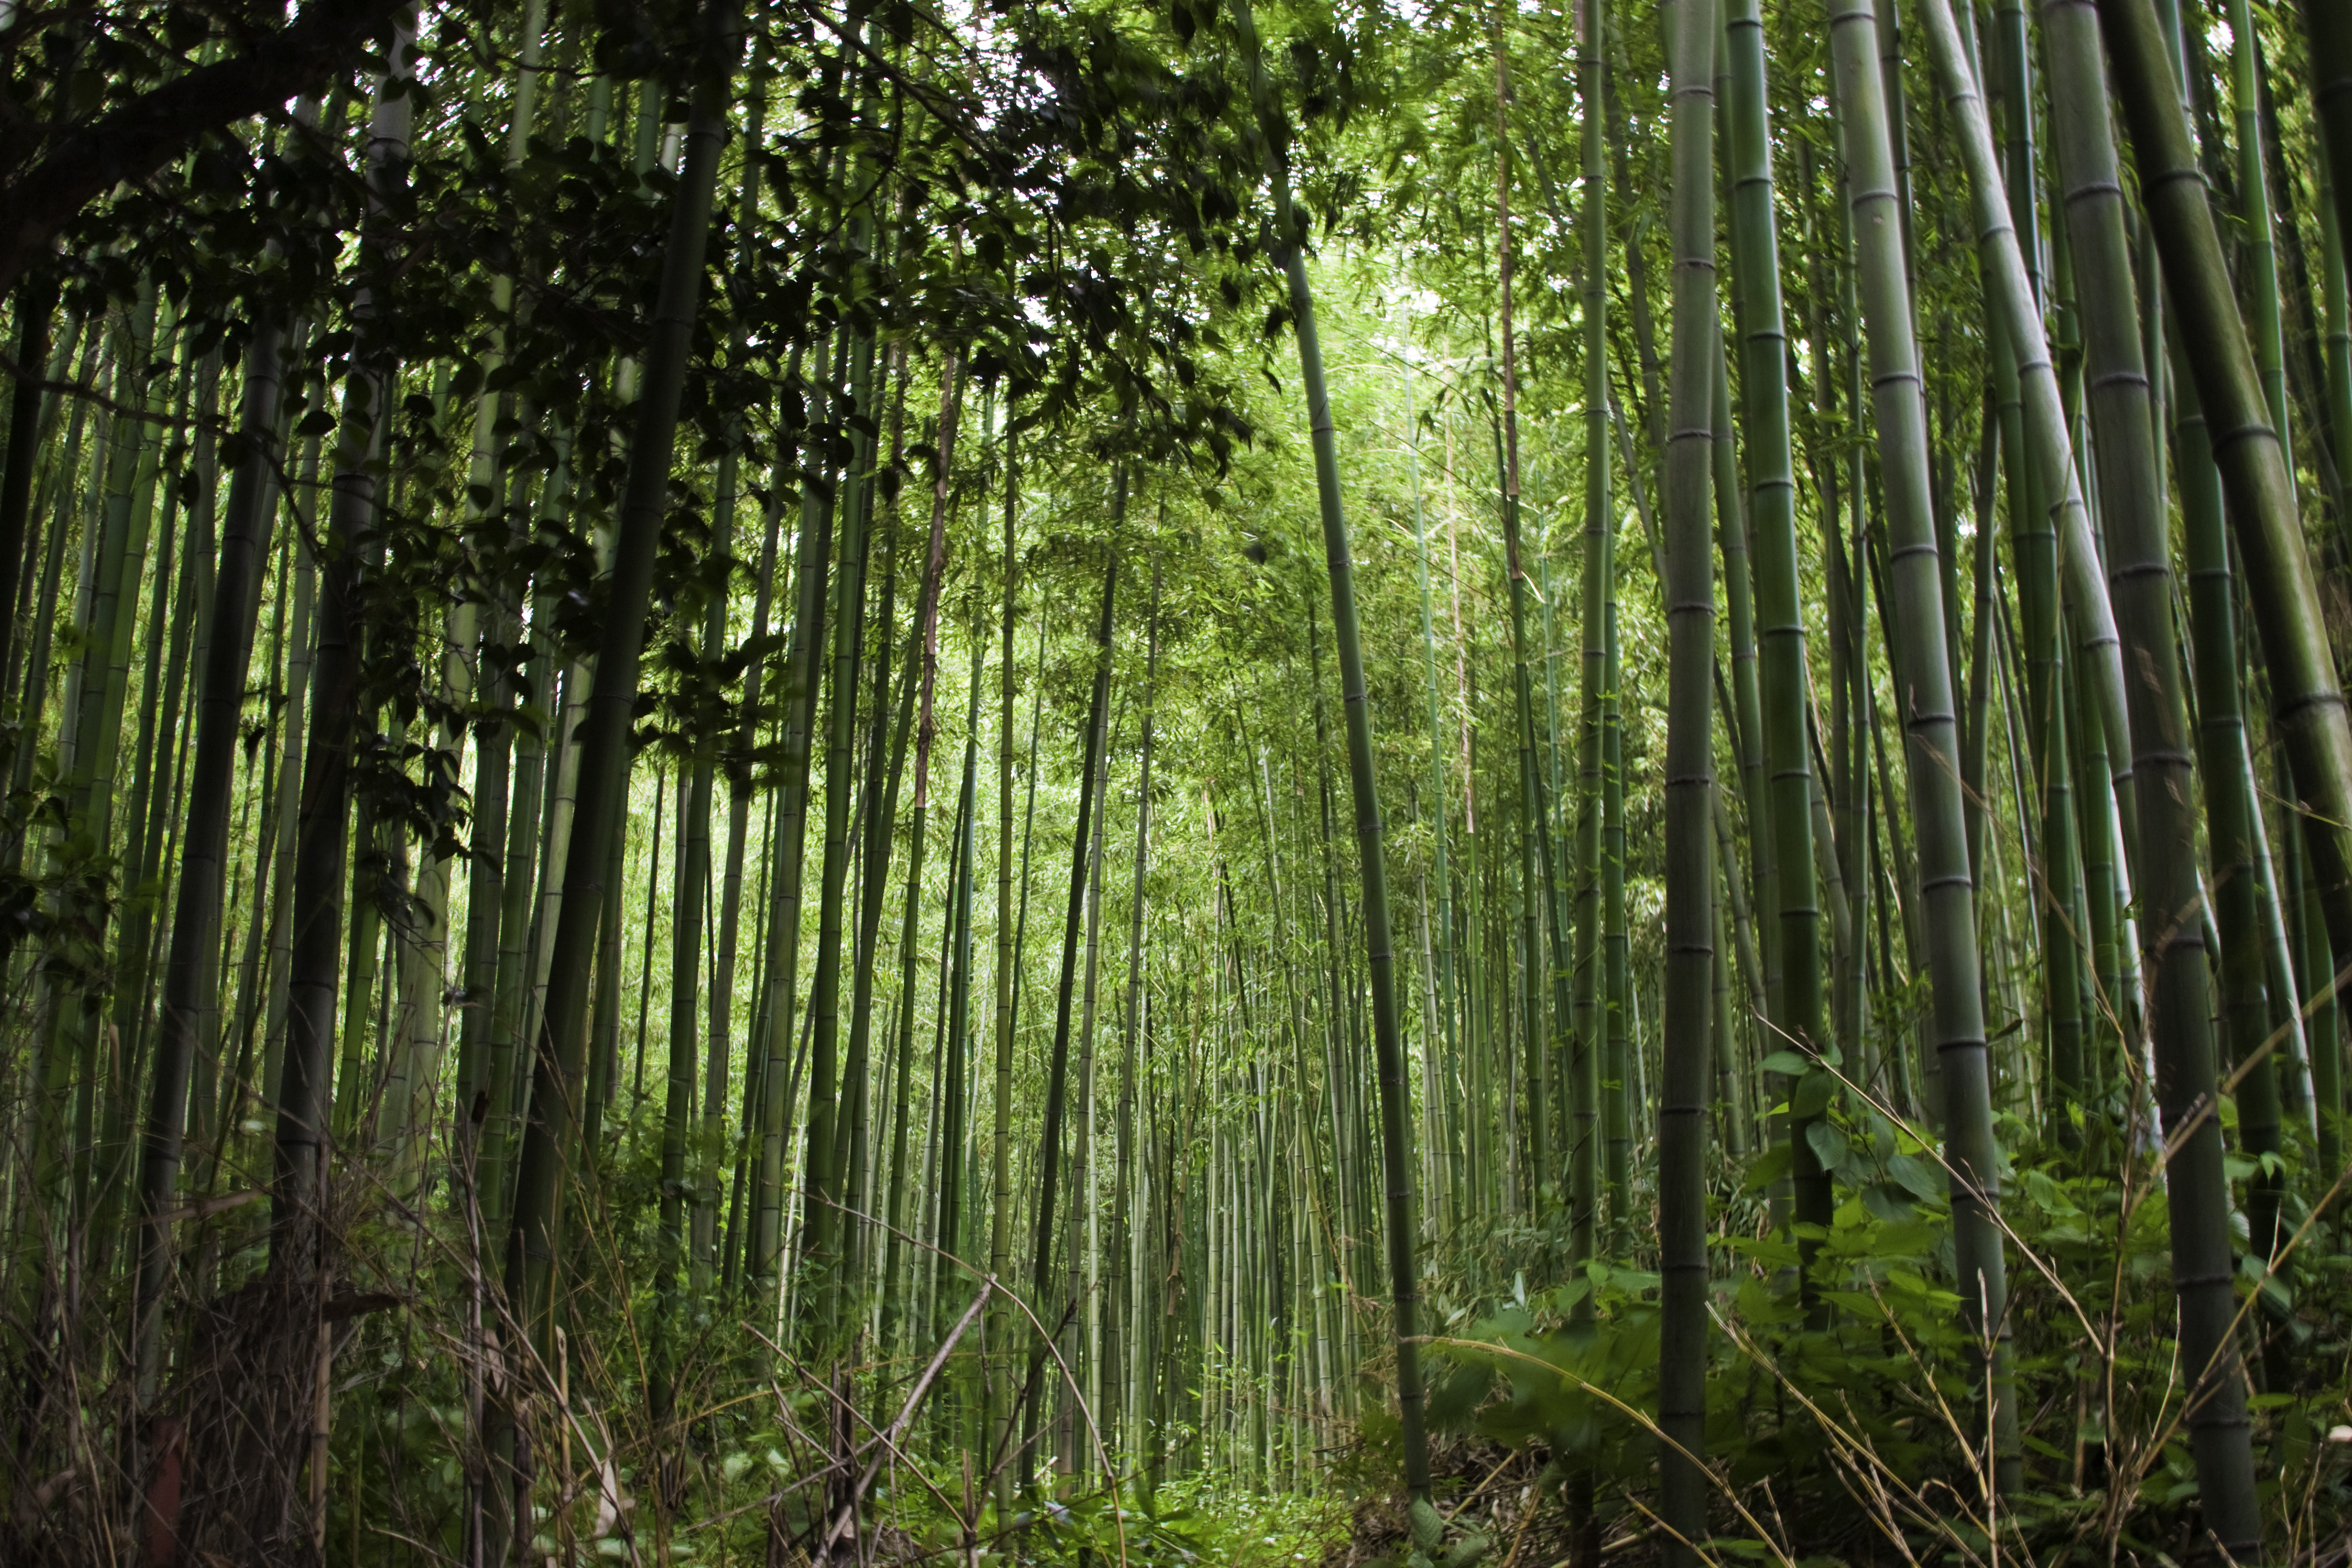 bamboo forest cool nature hd wide wallpaper for widescreenbamboo